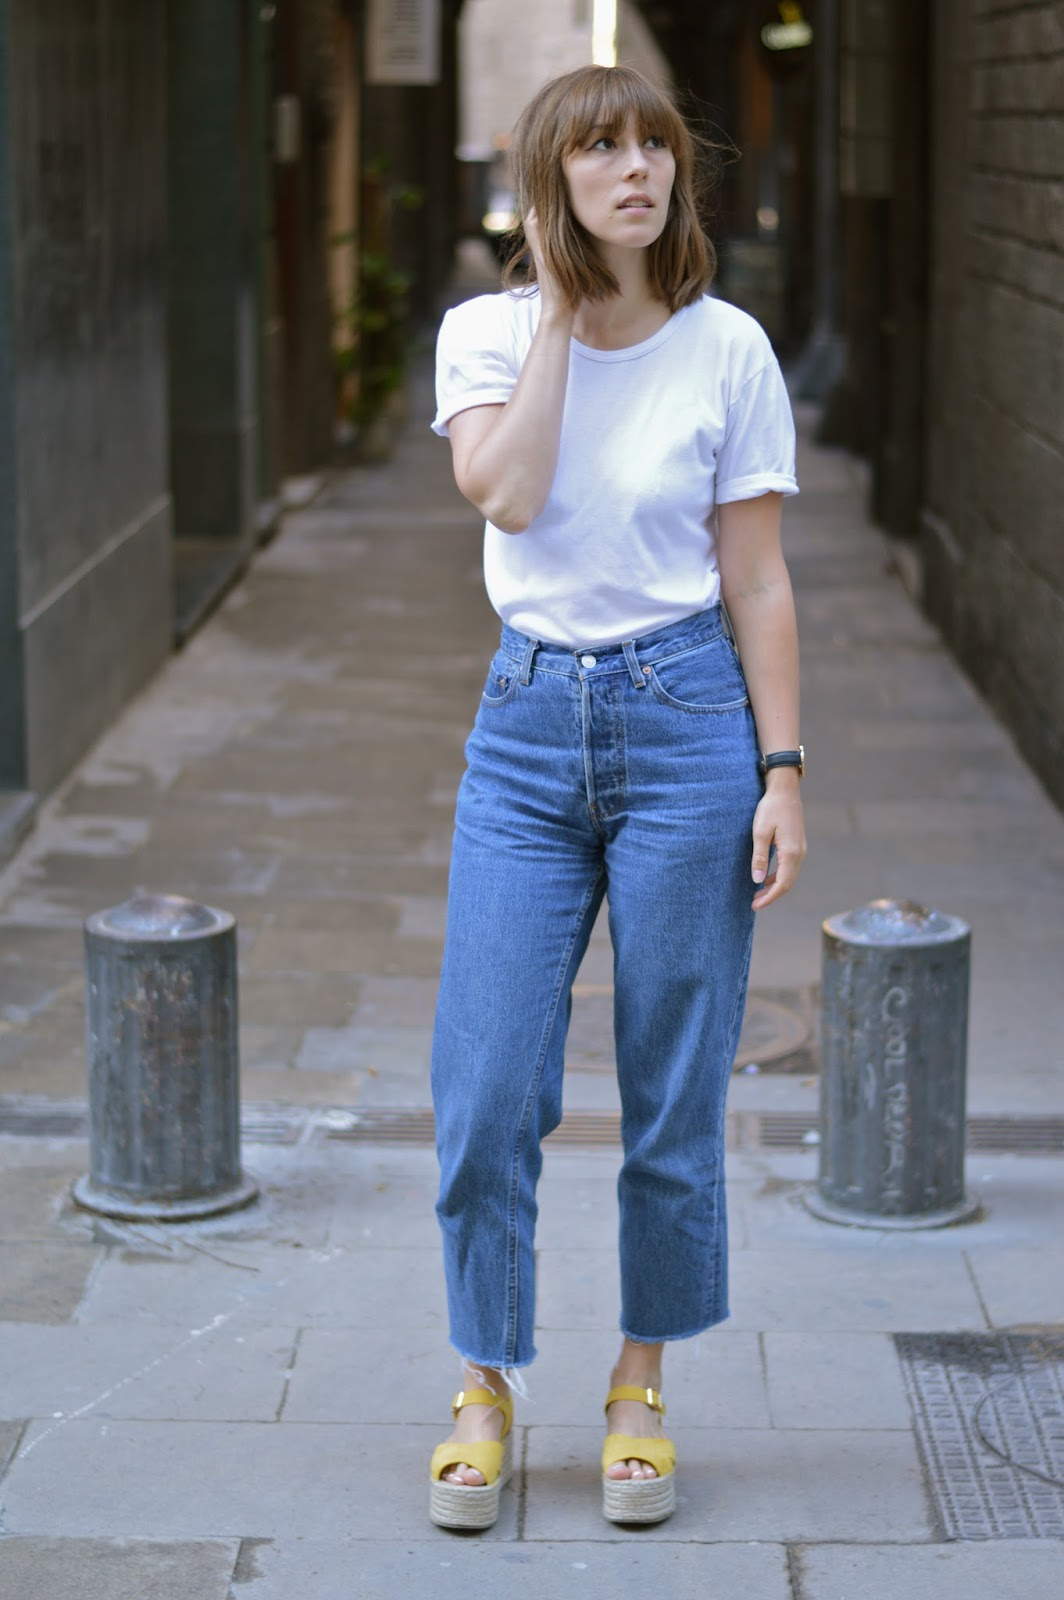 White t shirt and blue jeans - Basics Styling How To Wear Style Blue Jeans And A White T Shirt Rules